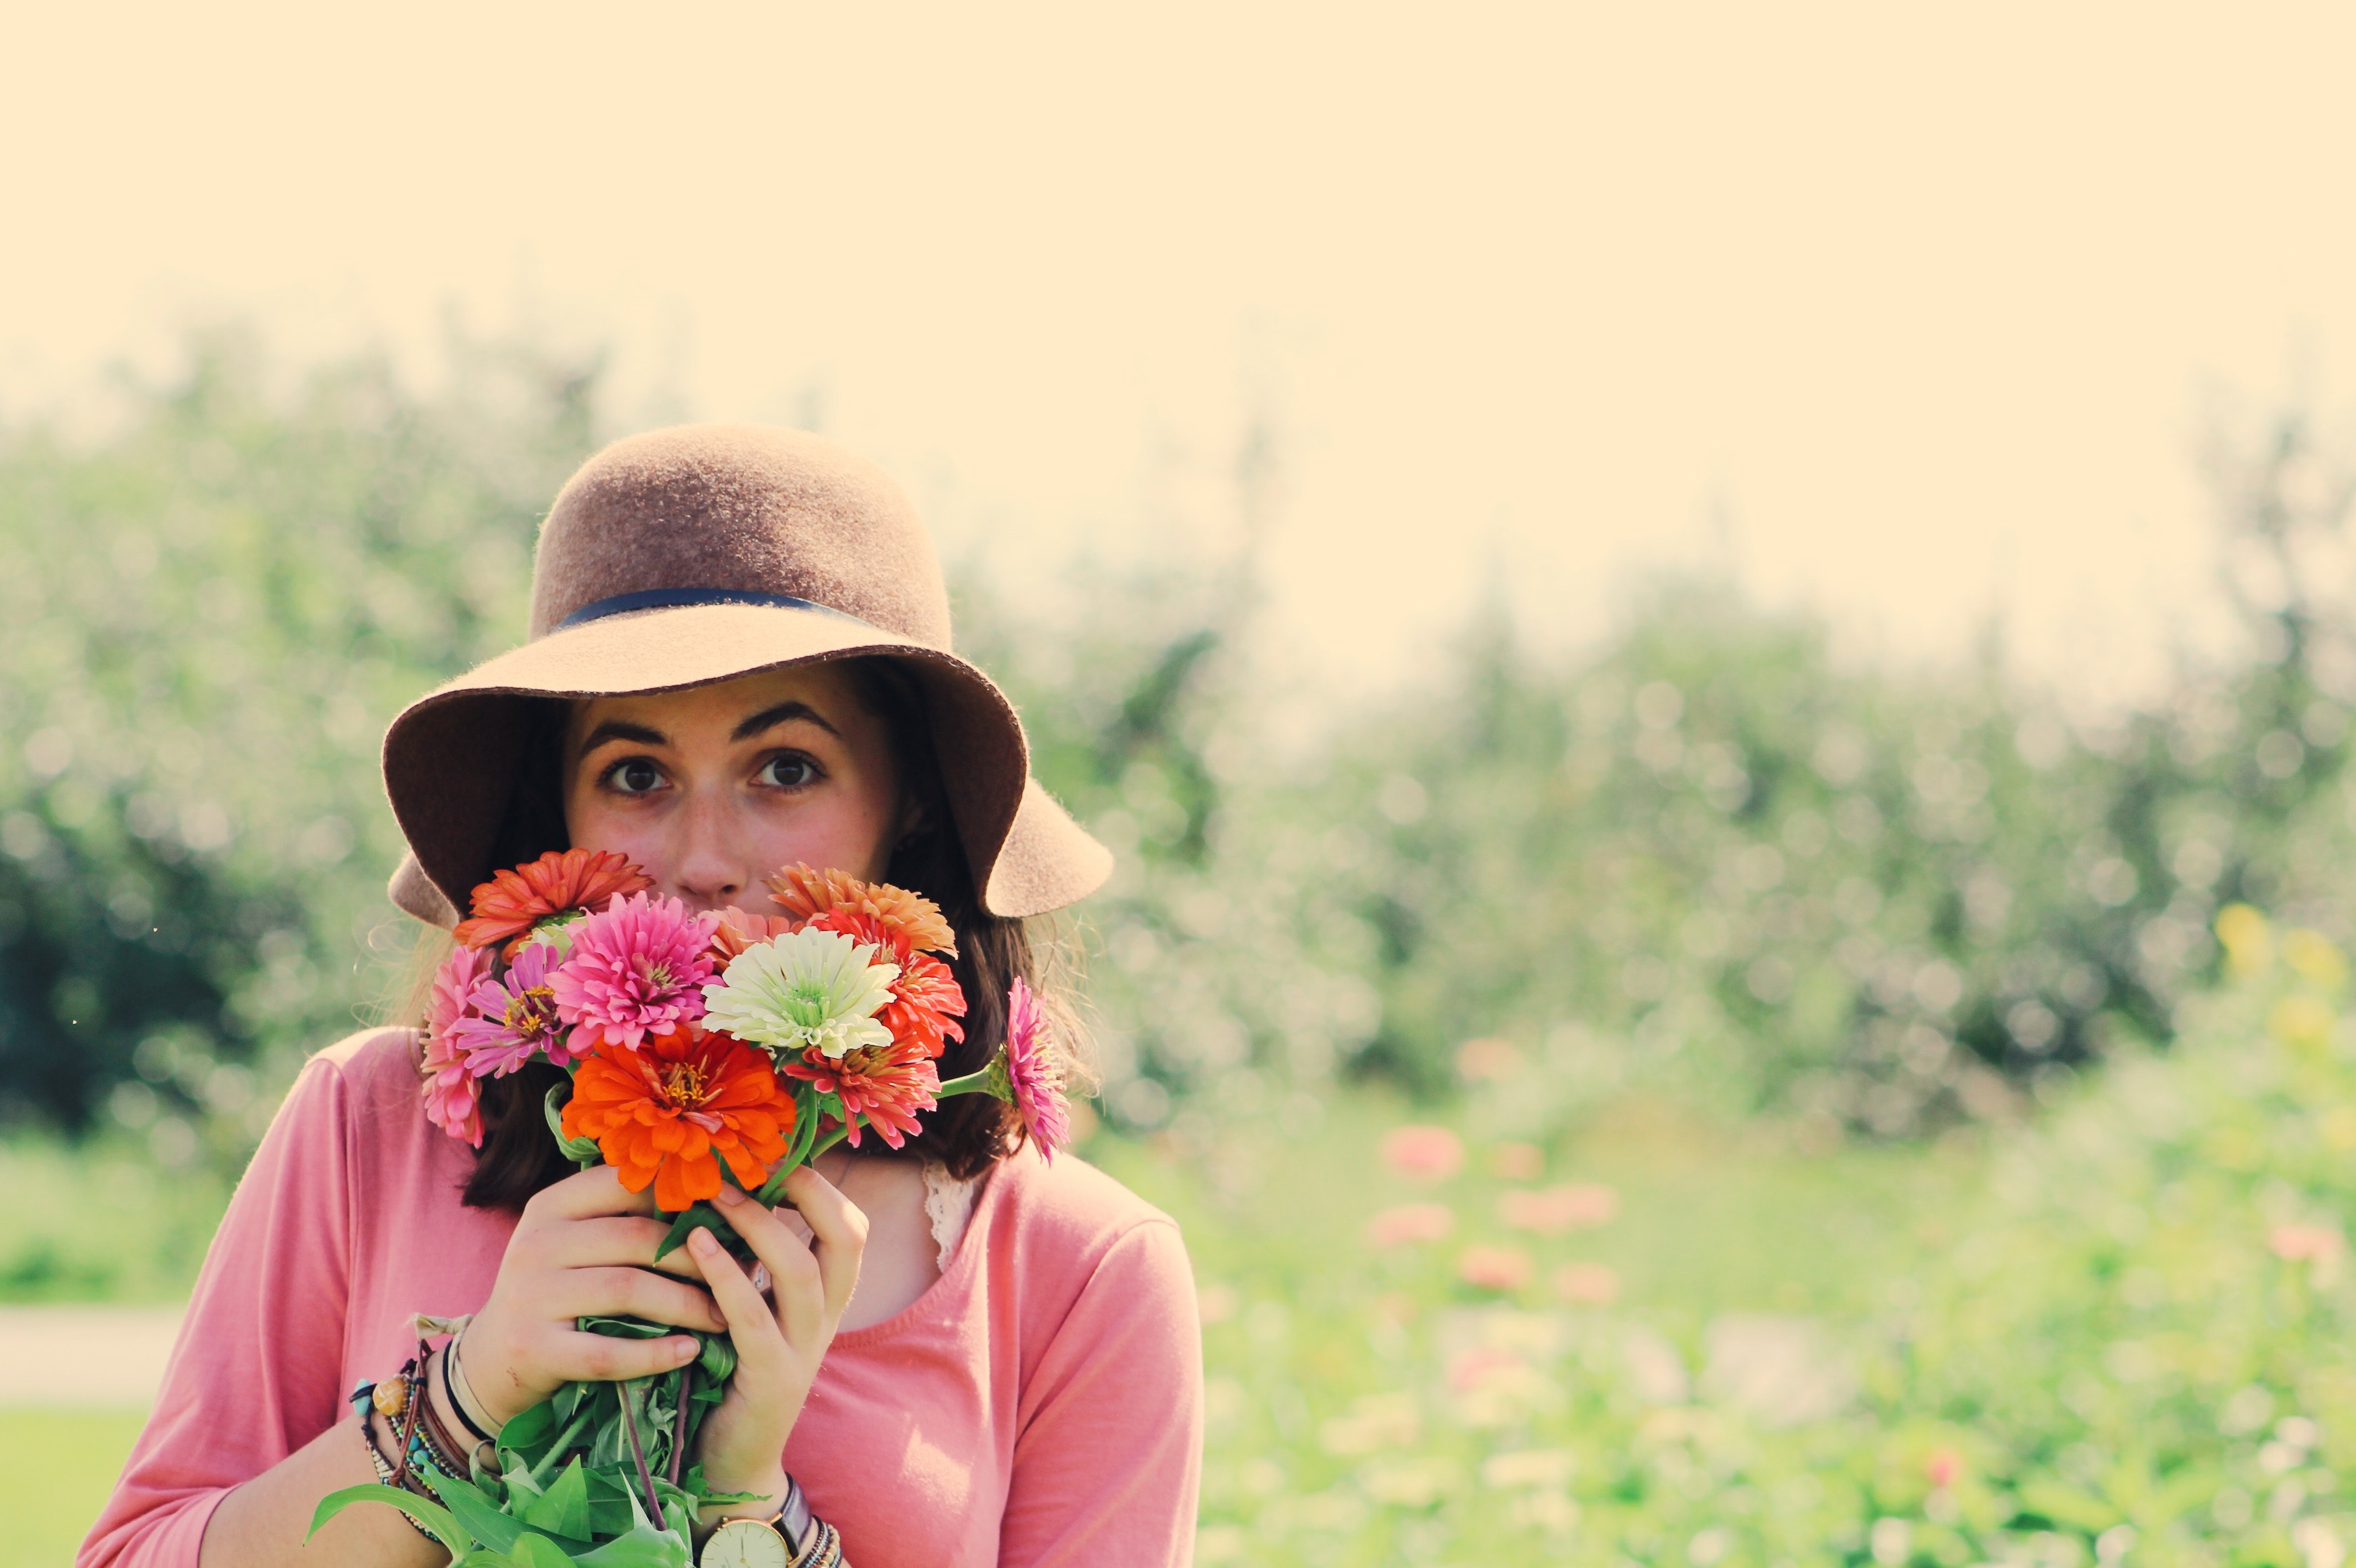 Woman Wearing Hat and Holding Flowers Surrounded by Plants, Beautiful, Happiness, Woman, Sun, HQ Photo